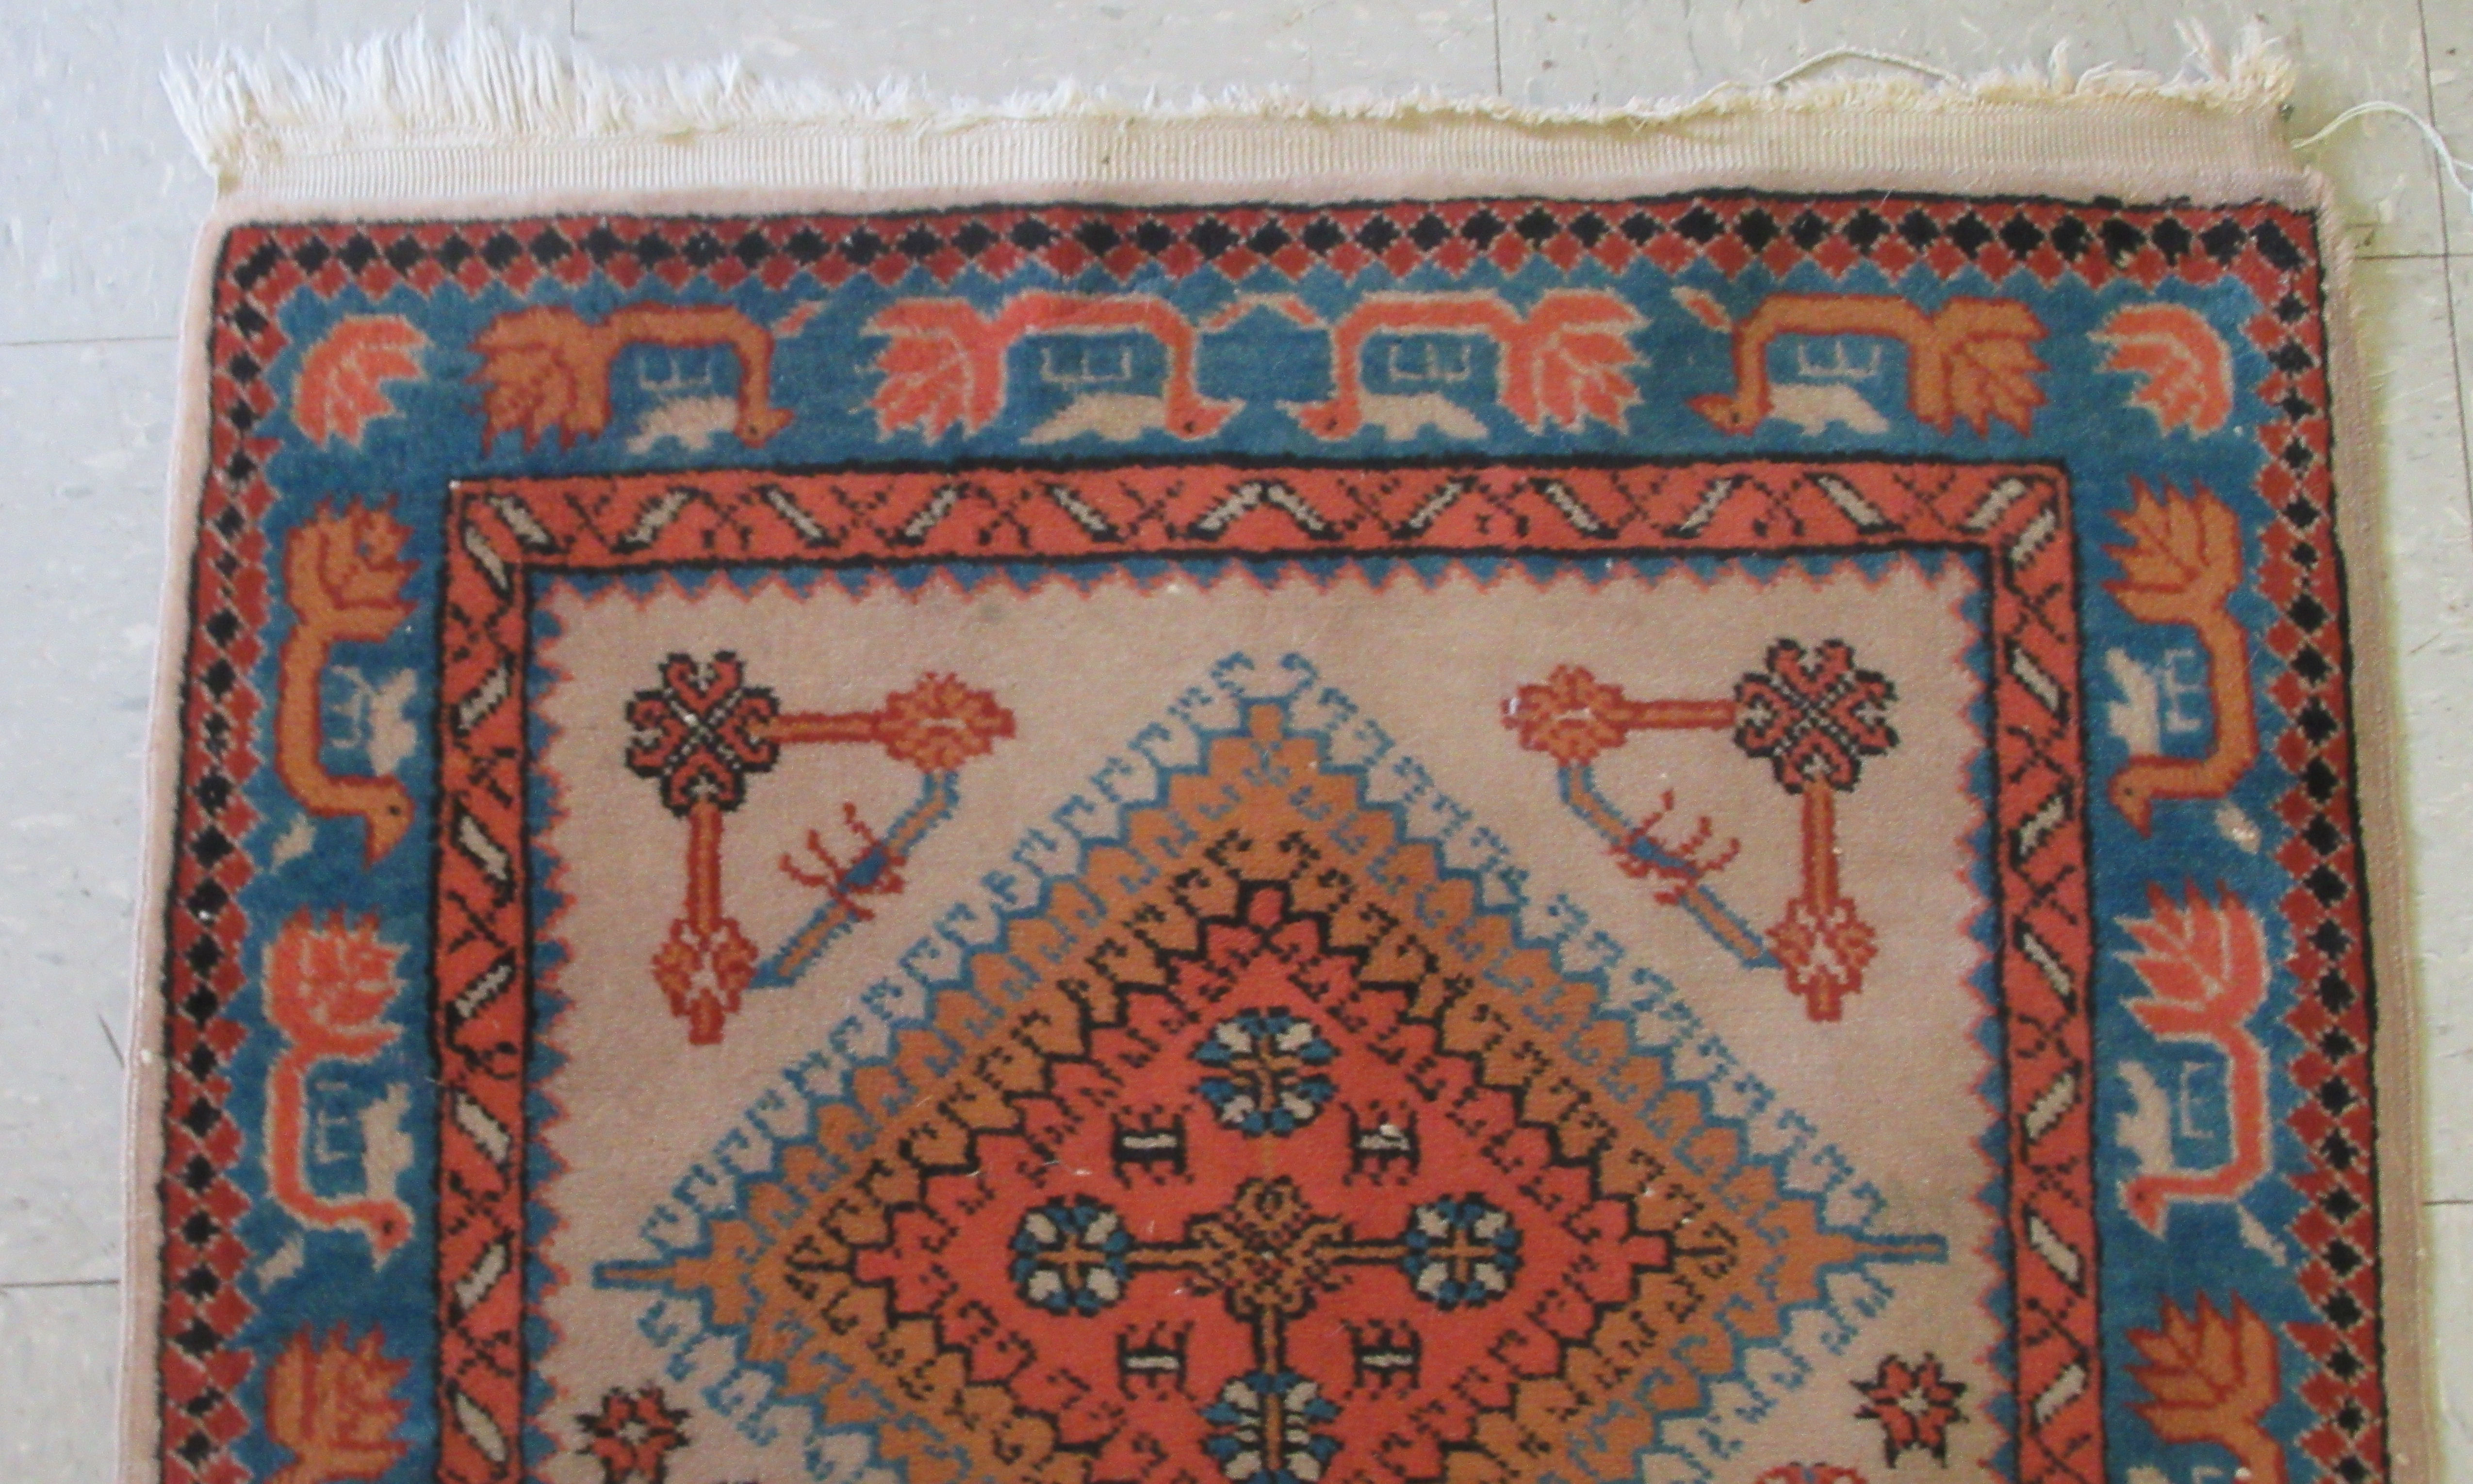 A Samarkand runner, decorated with repeating diamond formations, bordered by stylised designs, on - Image 3 of 5